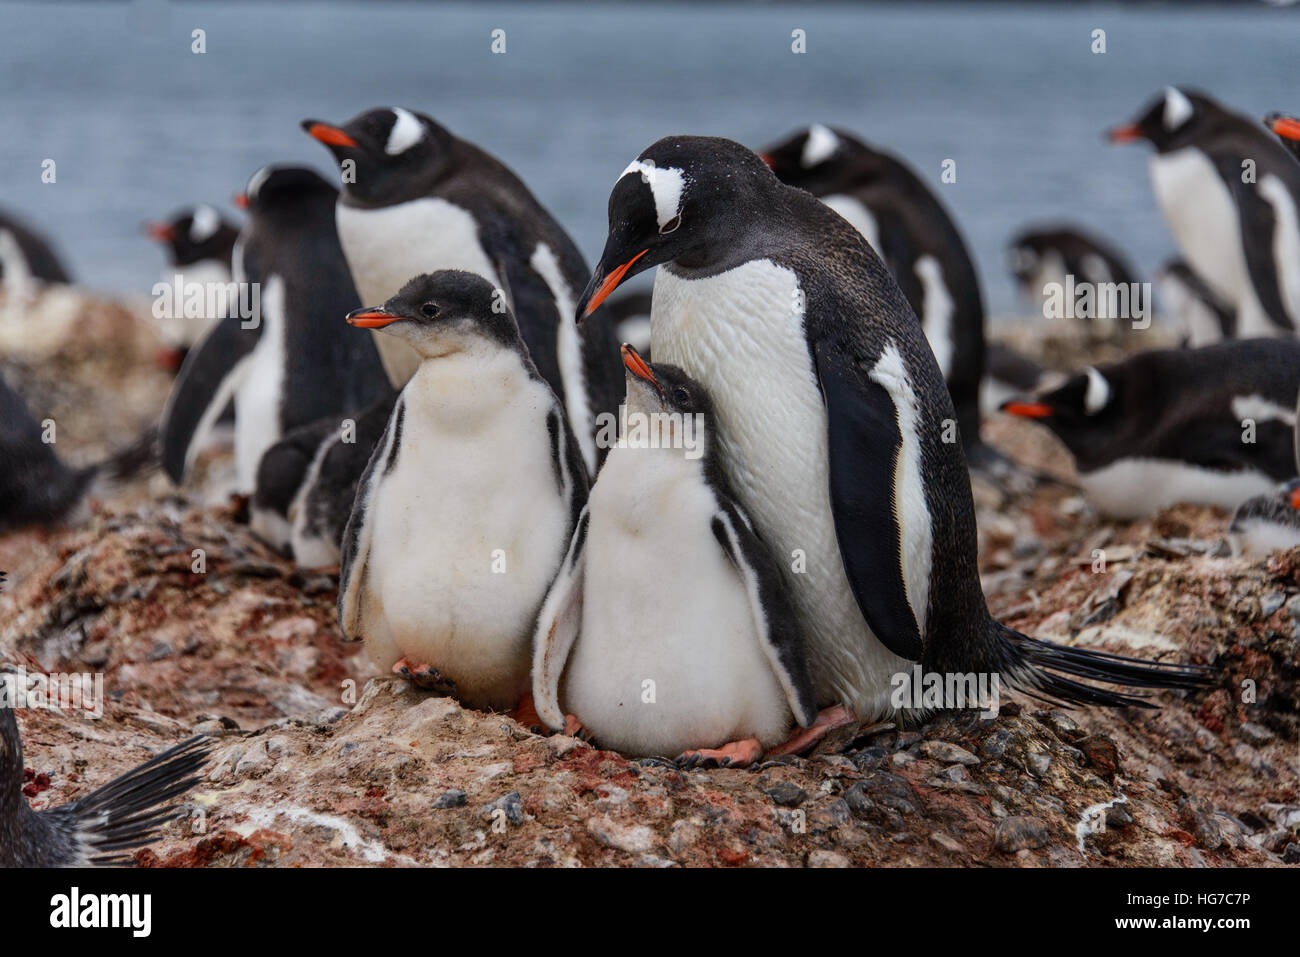 Gentoo penguin with chicks - Stock Image